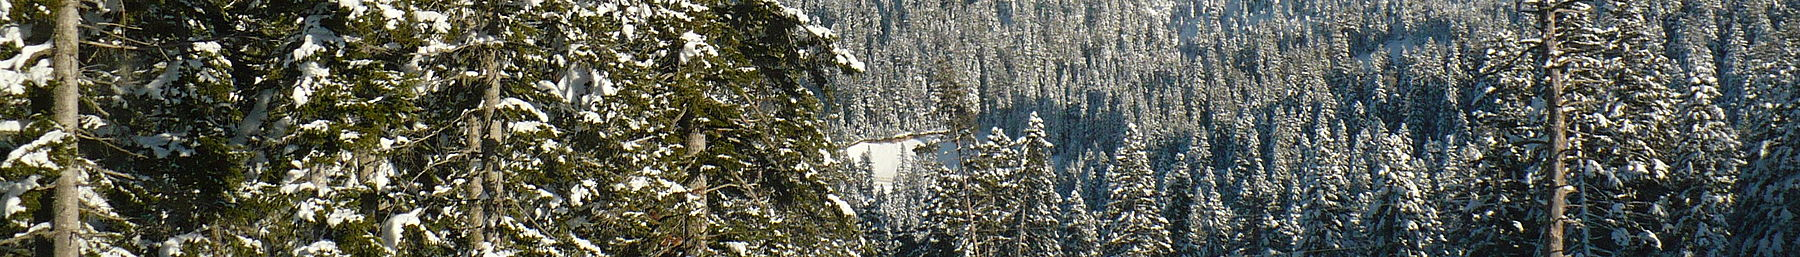 Spruce forests of Ilgaz